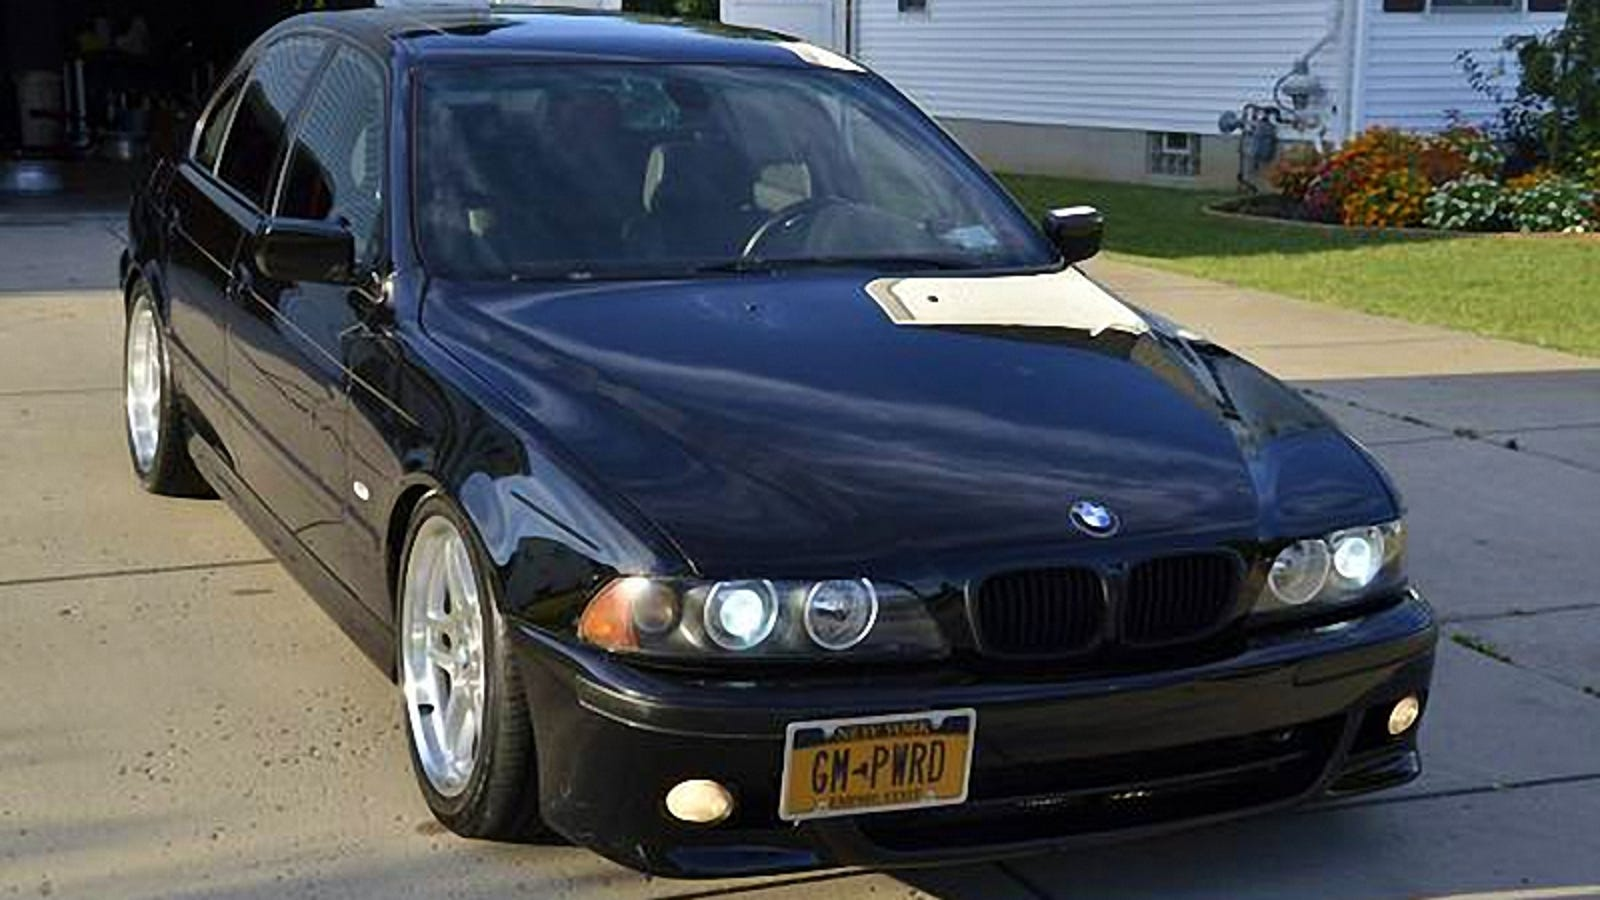 For $17,000, Will This 2001 BMW 540i Get Your Goat?